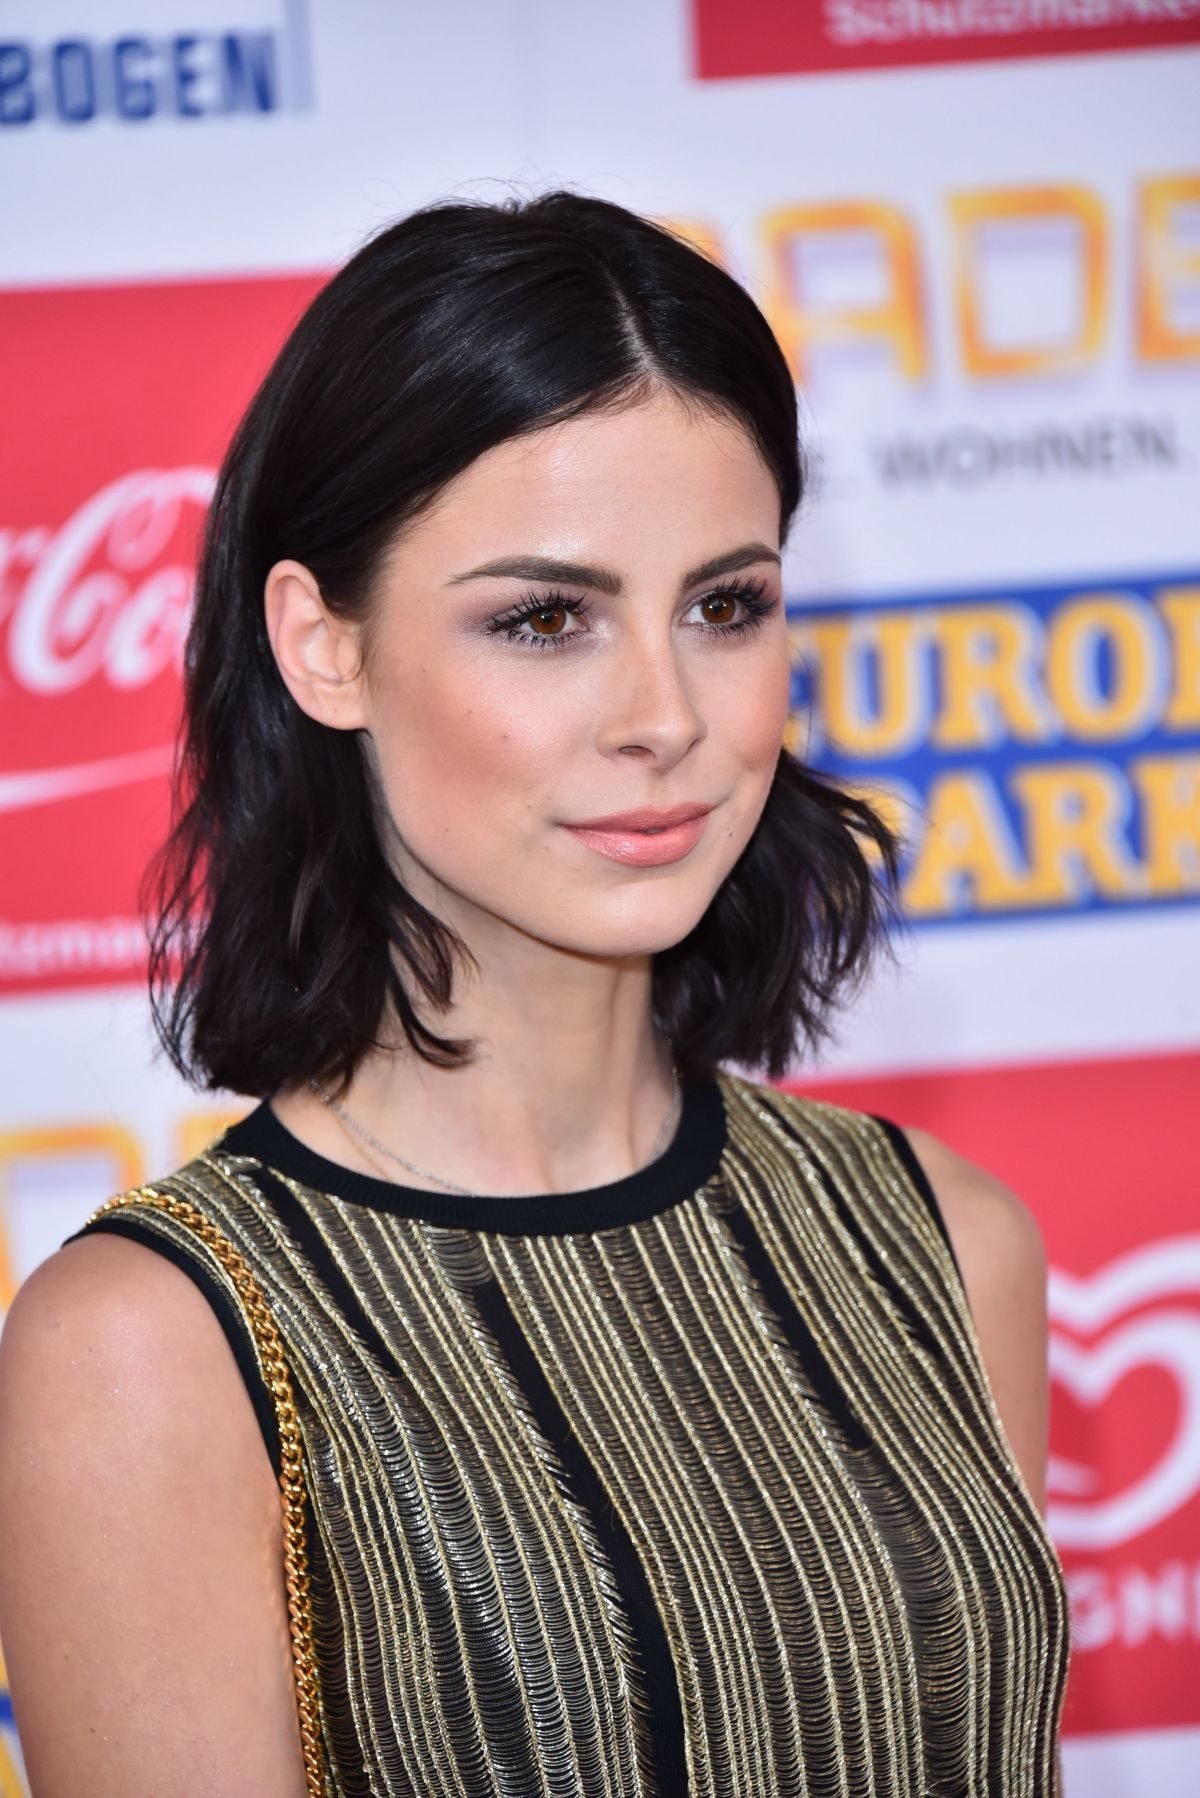 Lena Meyer Landrut At Radio Regenbogen Award 04222016 Hawtcelebs